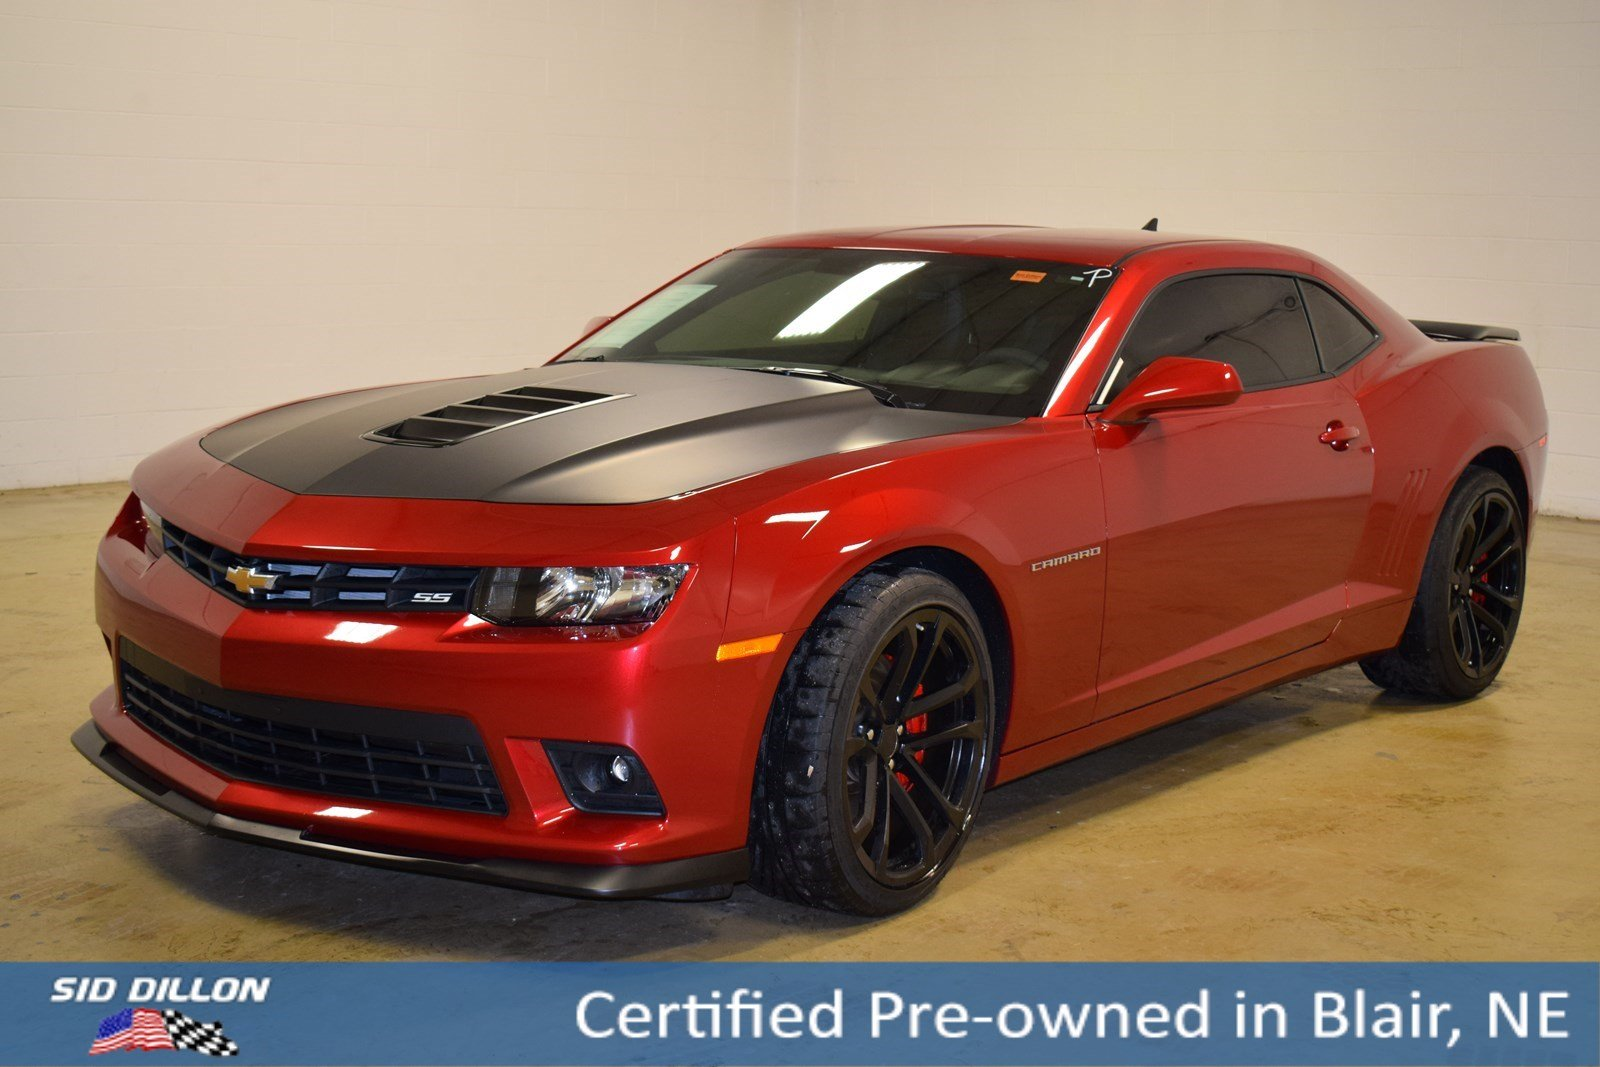 Camaro chevy camaro ss 1le : Certified Pre-Owned 2014 Chevrolet Camaro SS 1LE 2 Door Coupe in ...